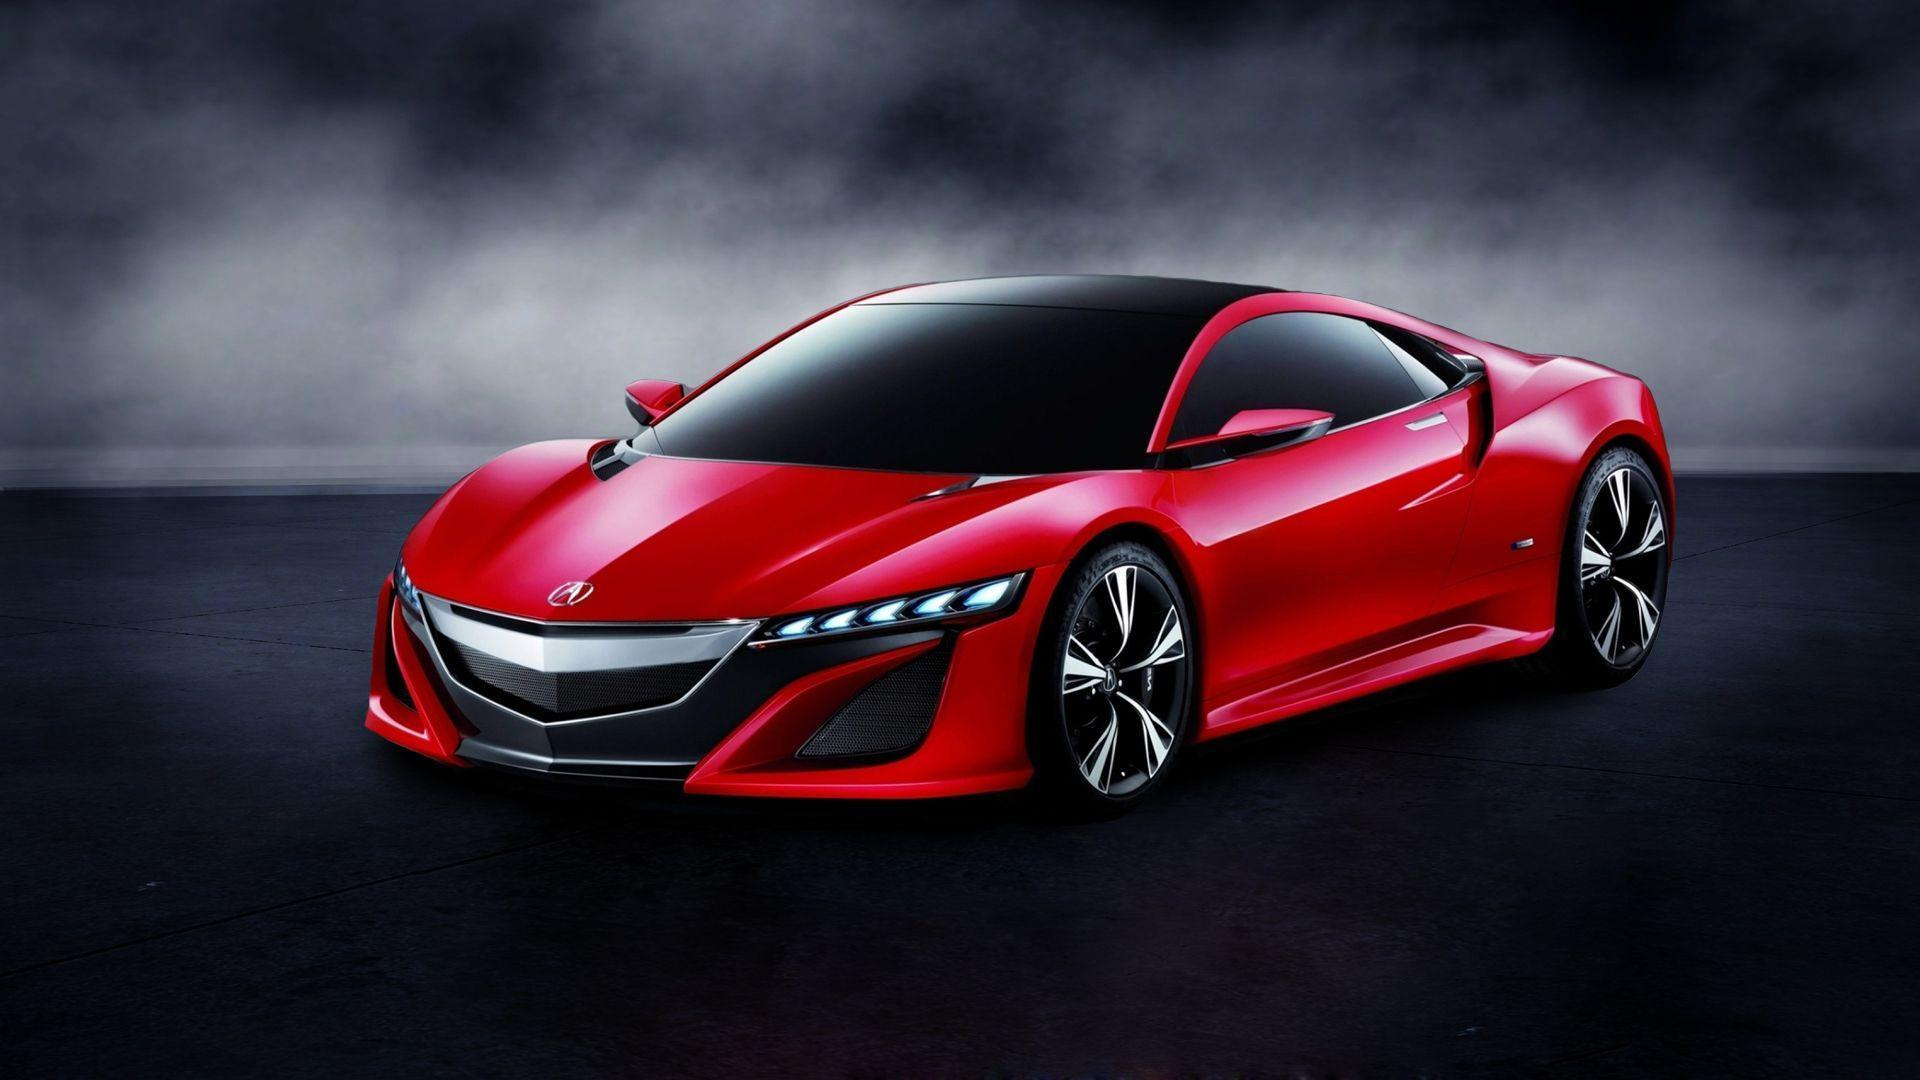 Acura NSX Wallpaper HD - WallpaperSafari